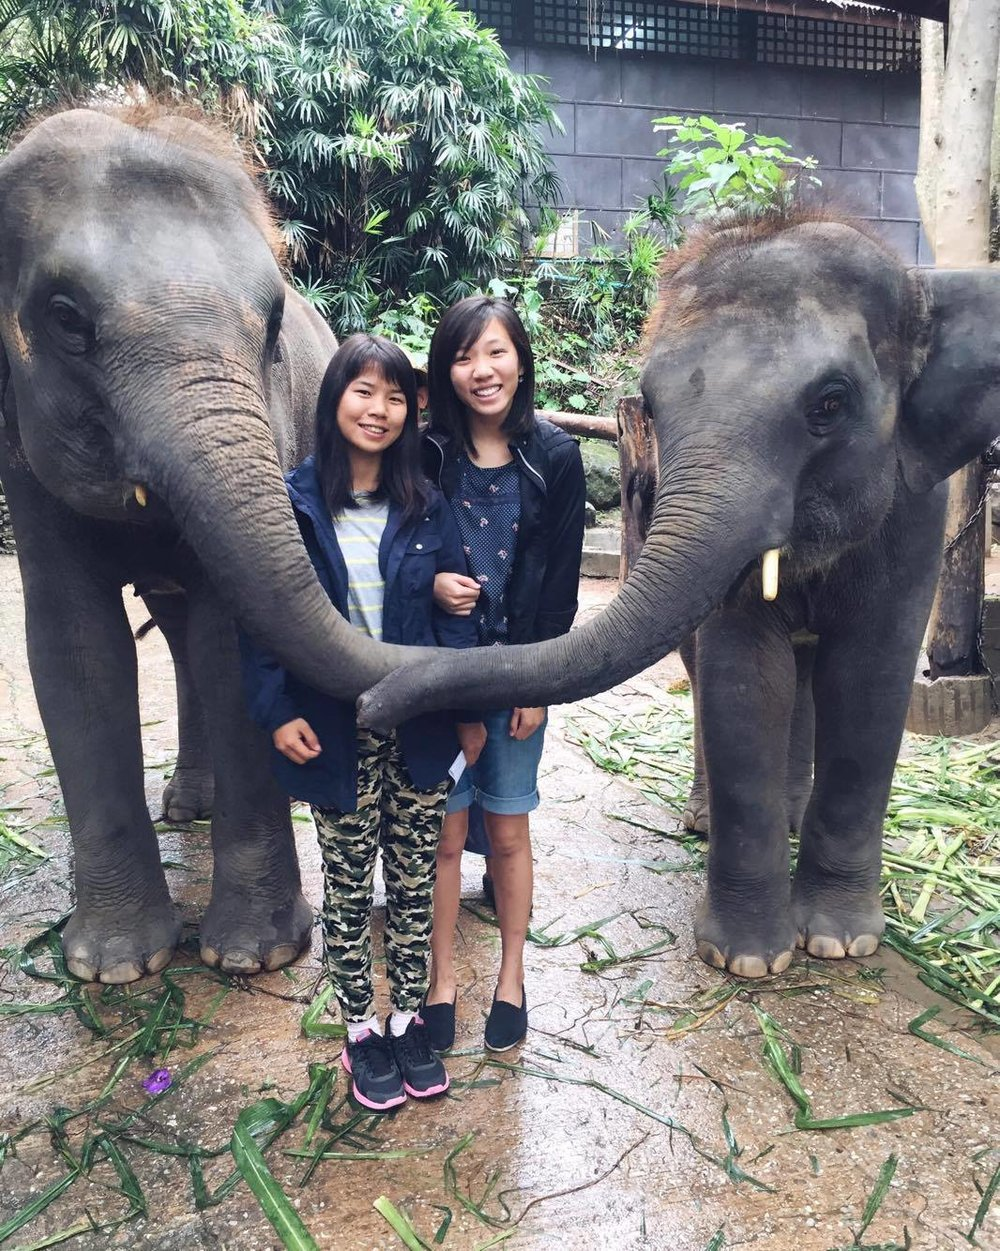 Arsami and me with the elephants!